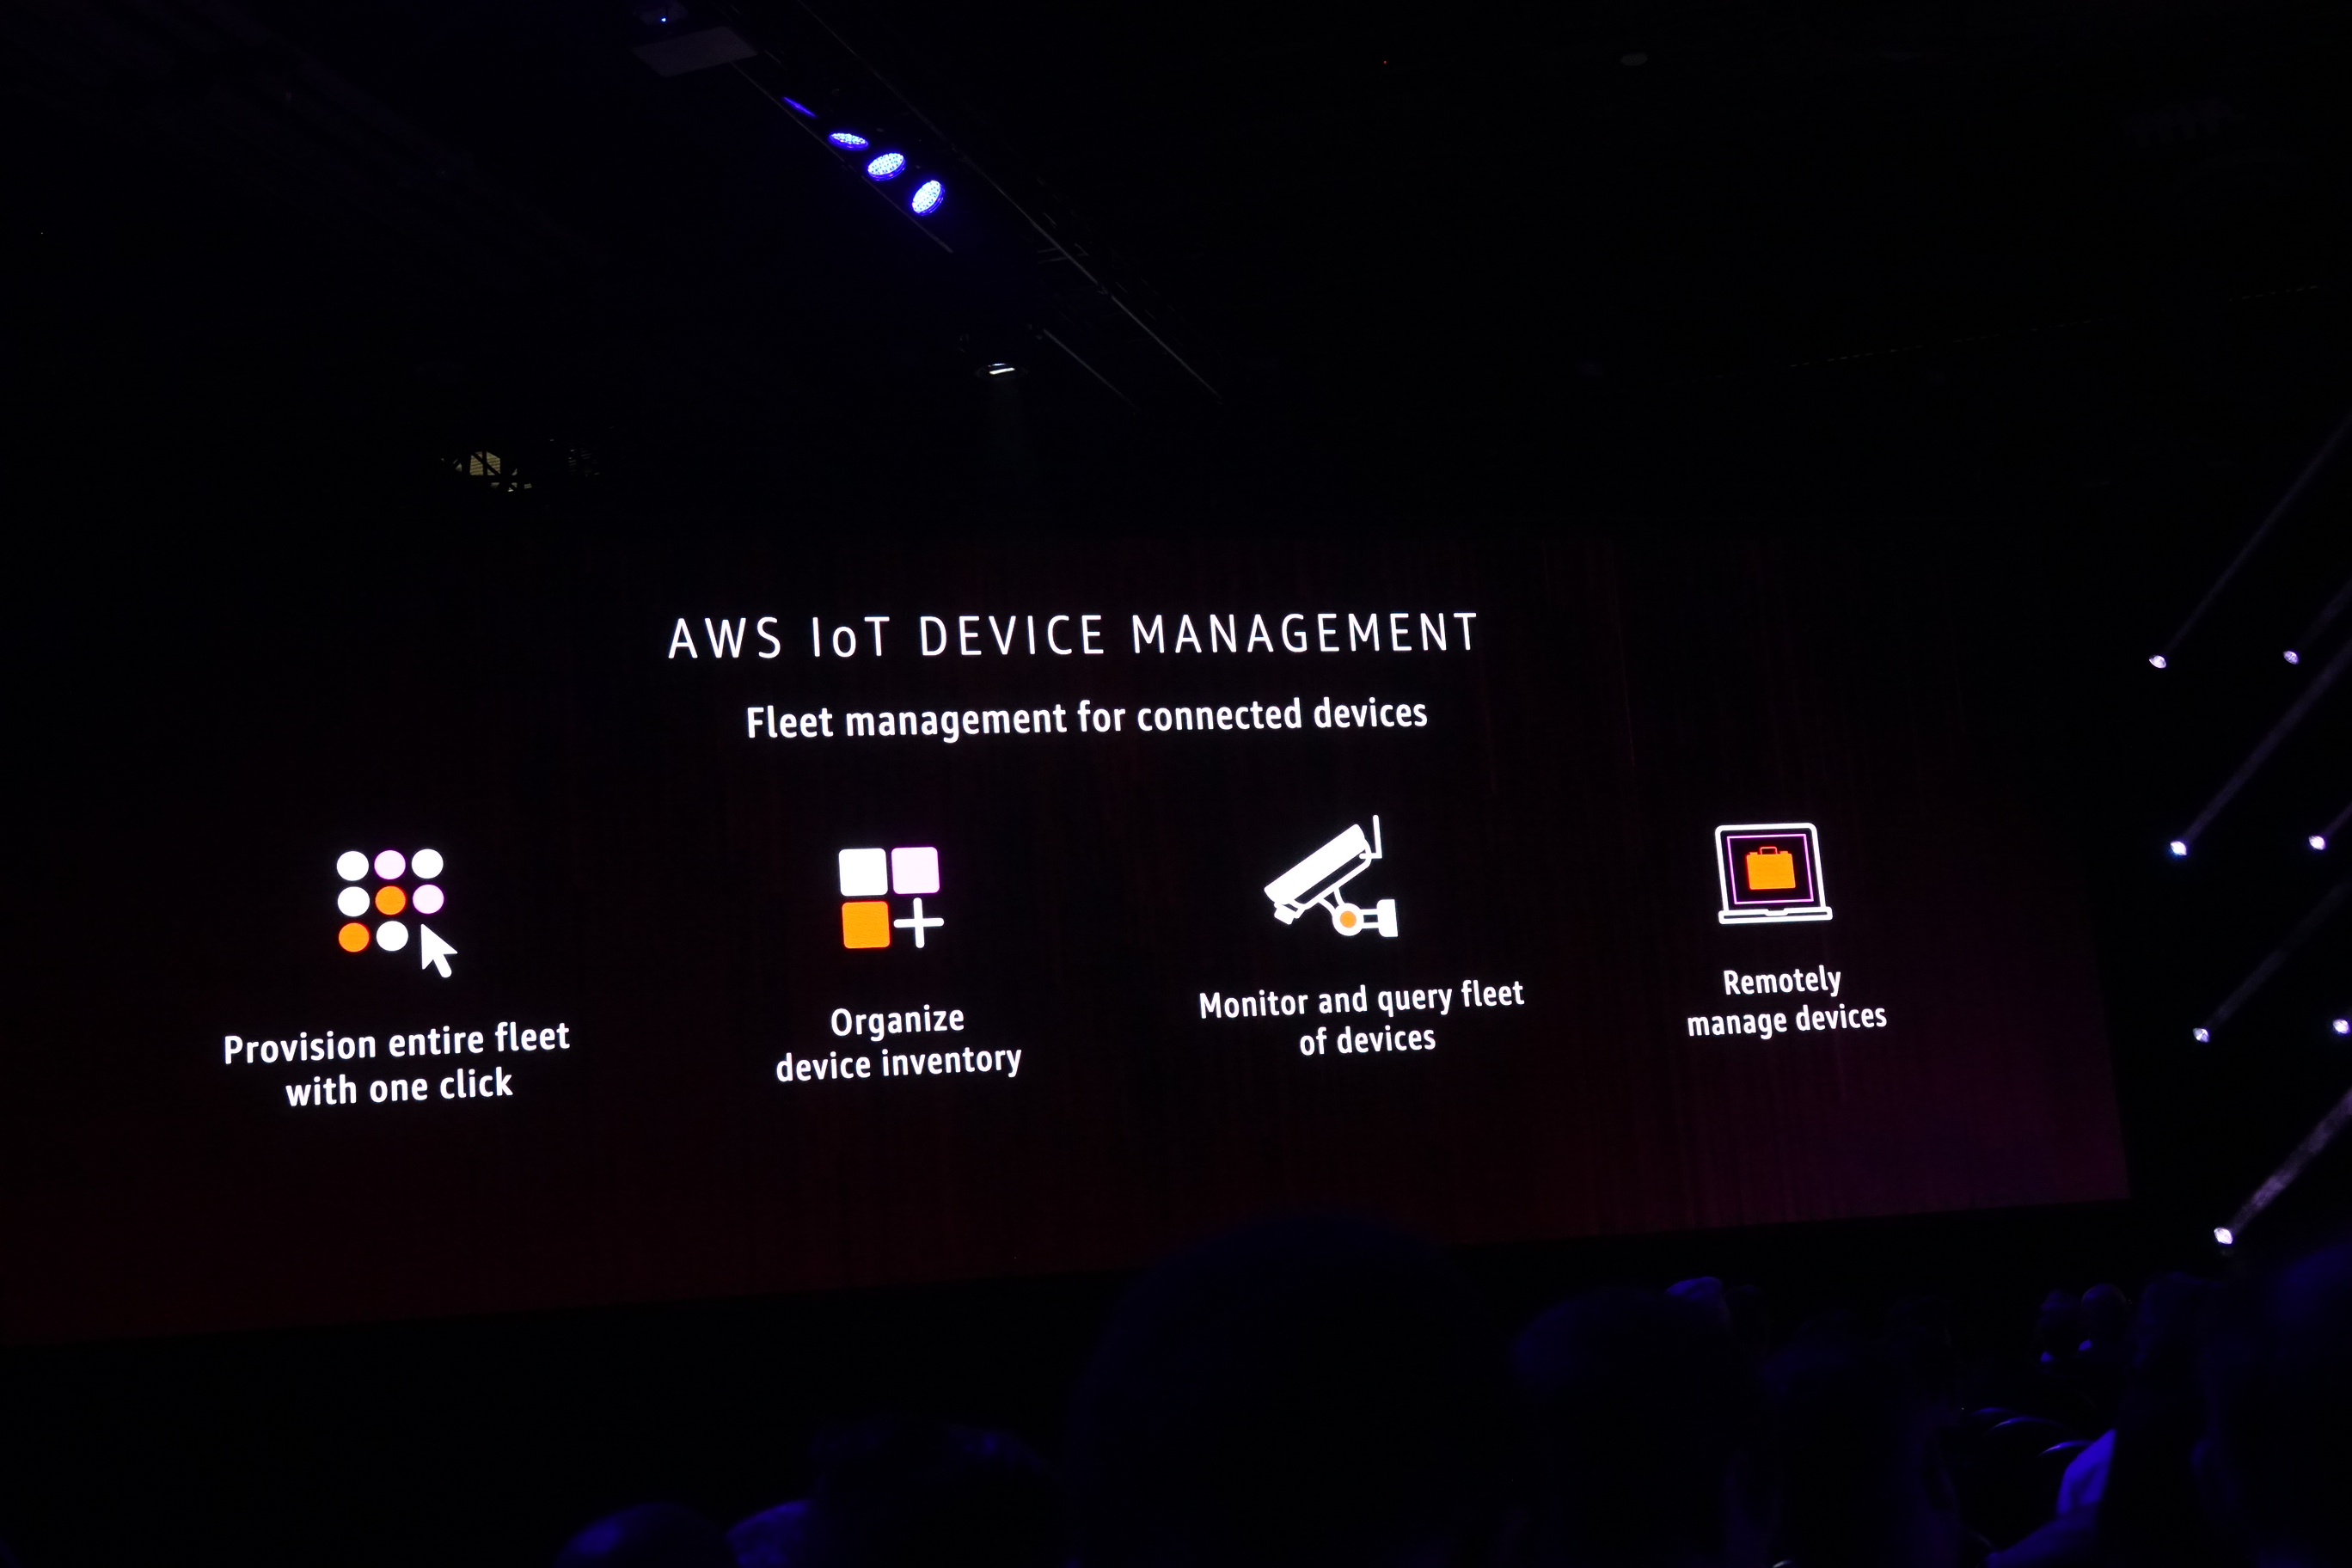 AWS IoT DEVICE MANAGEMENT